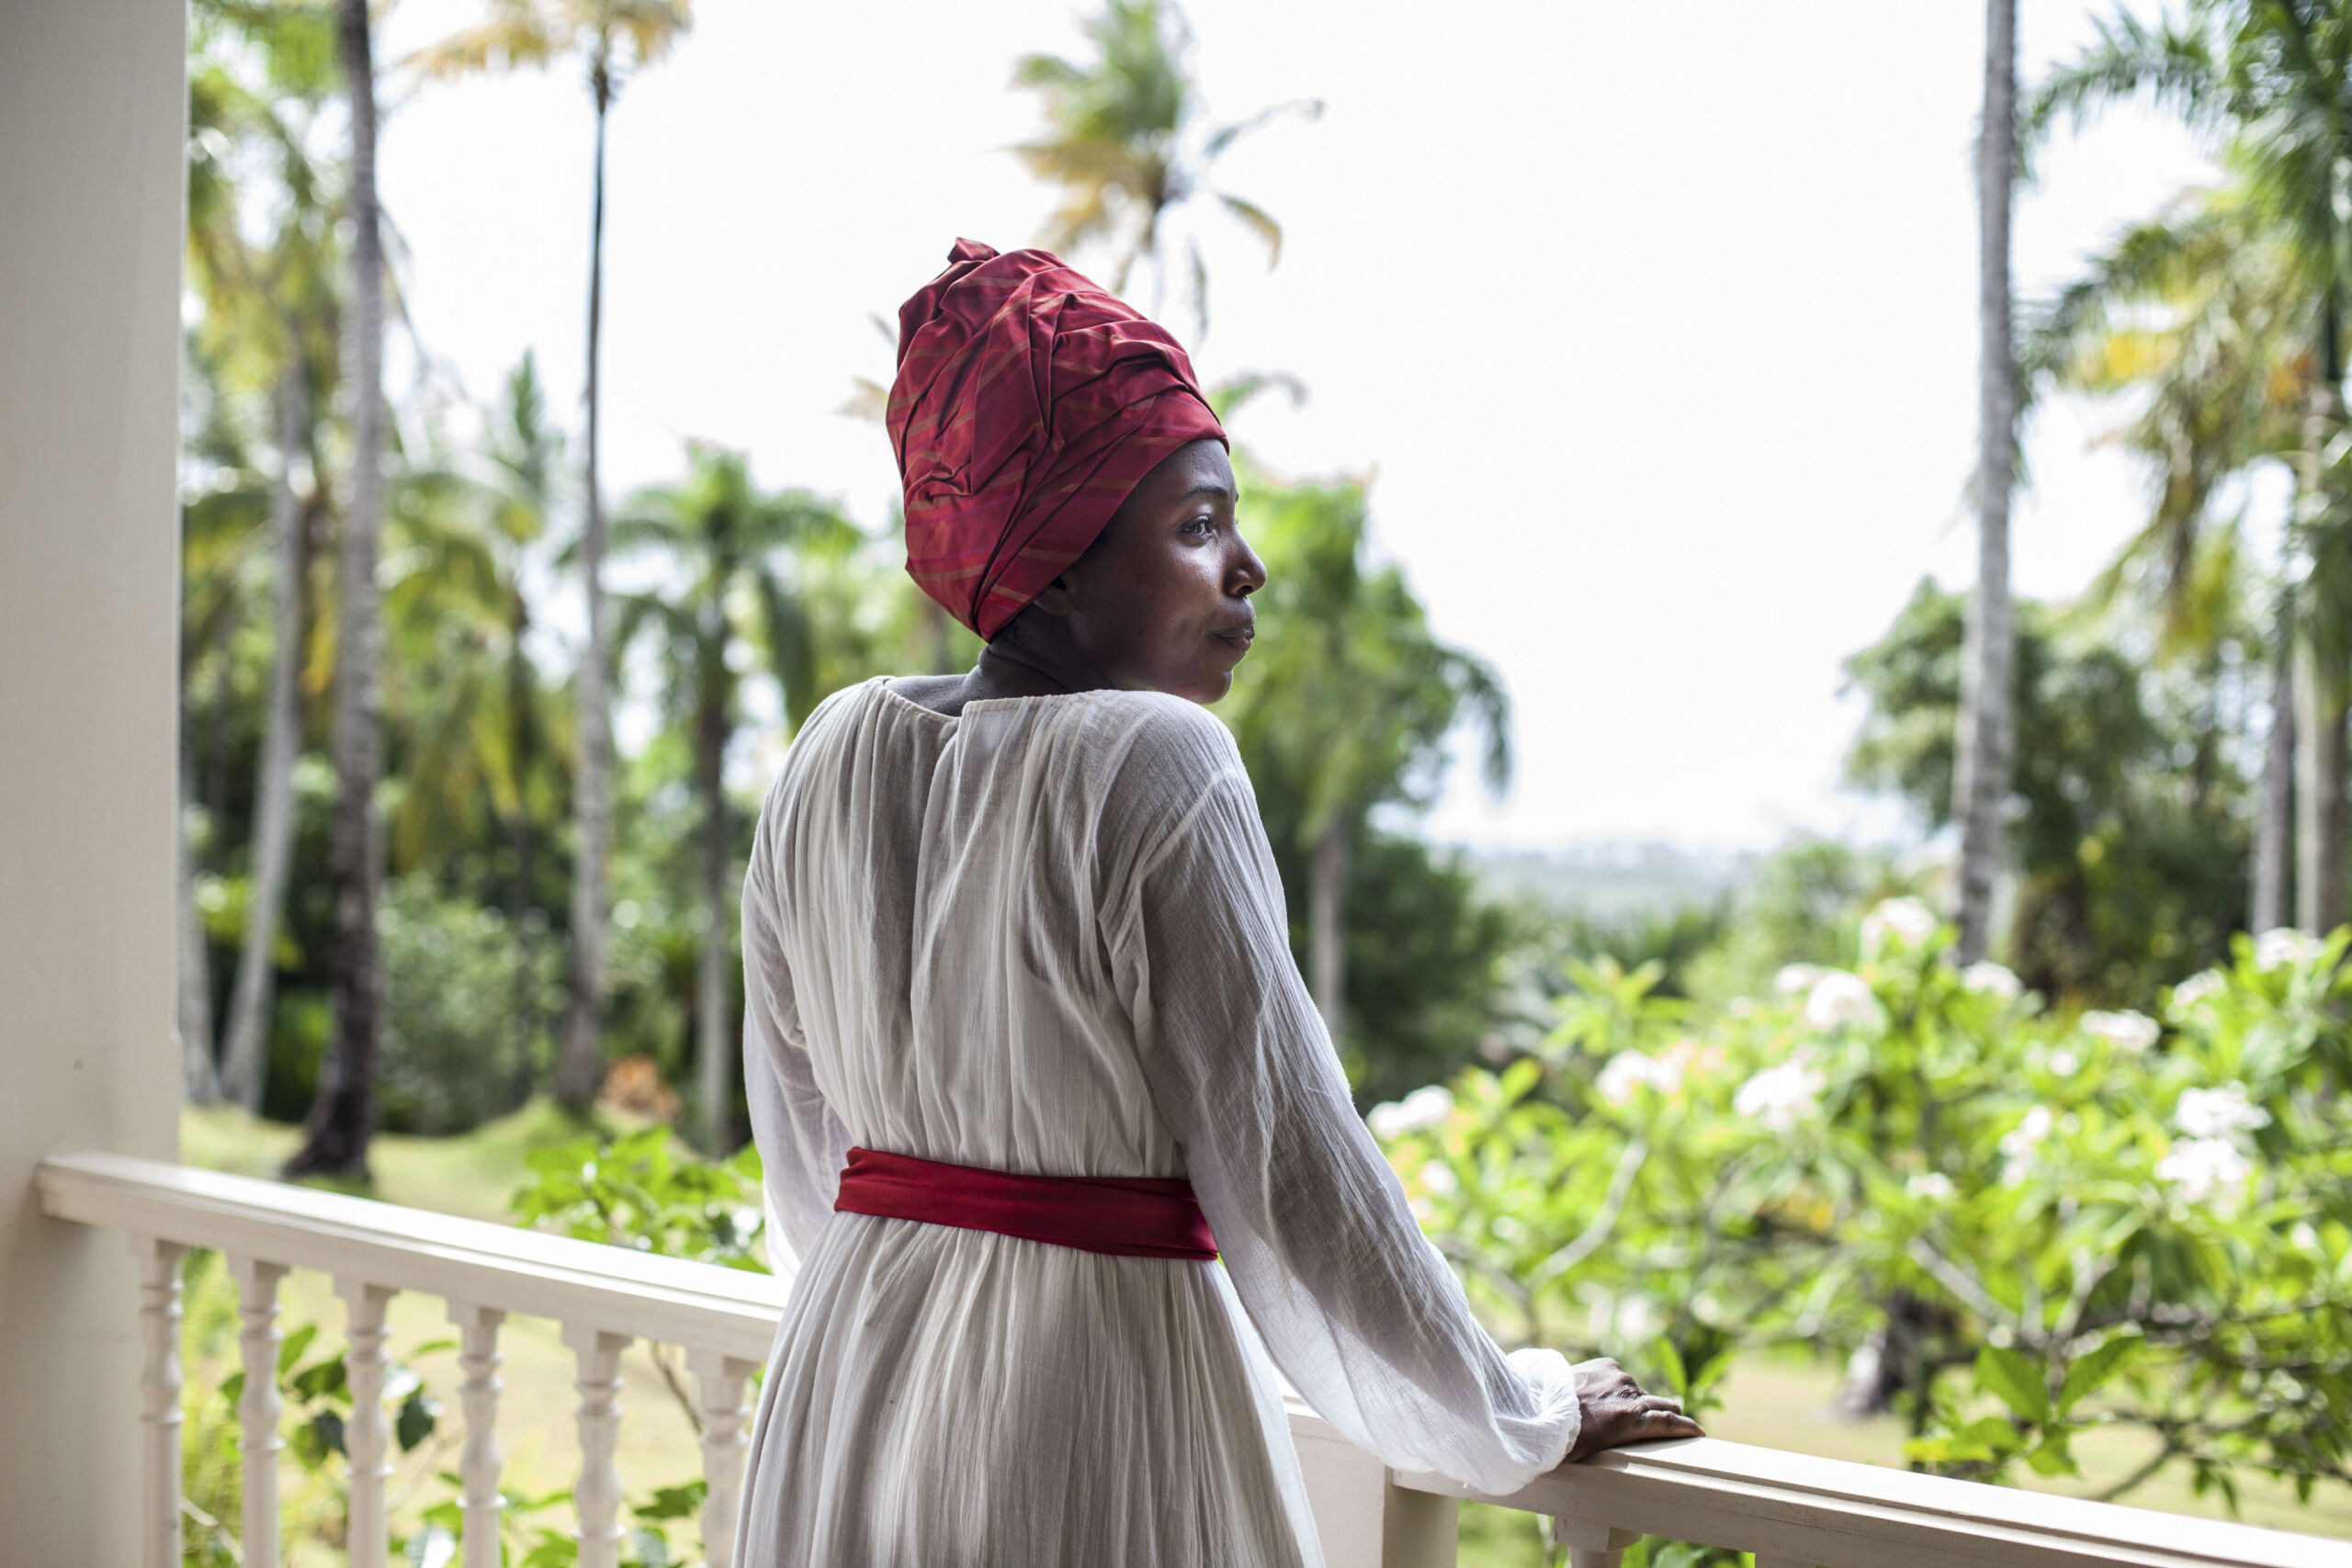 A Black woman in red cloth headwrap and white dress with red belt stands at a wooden balcony and looks out to tropical greenery.